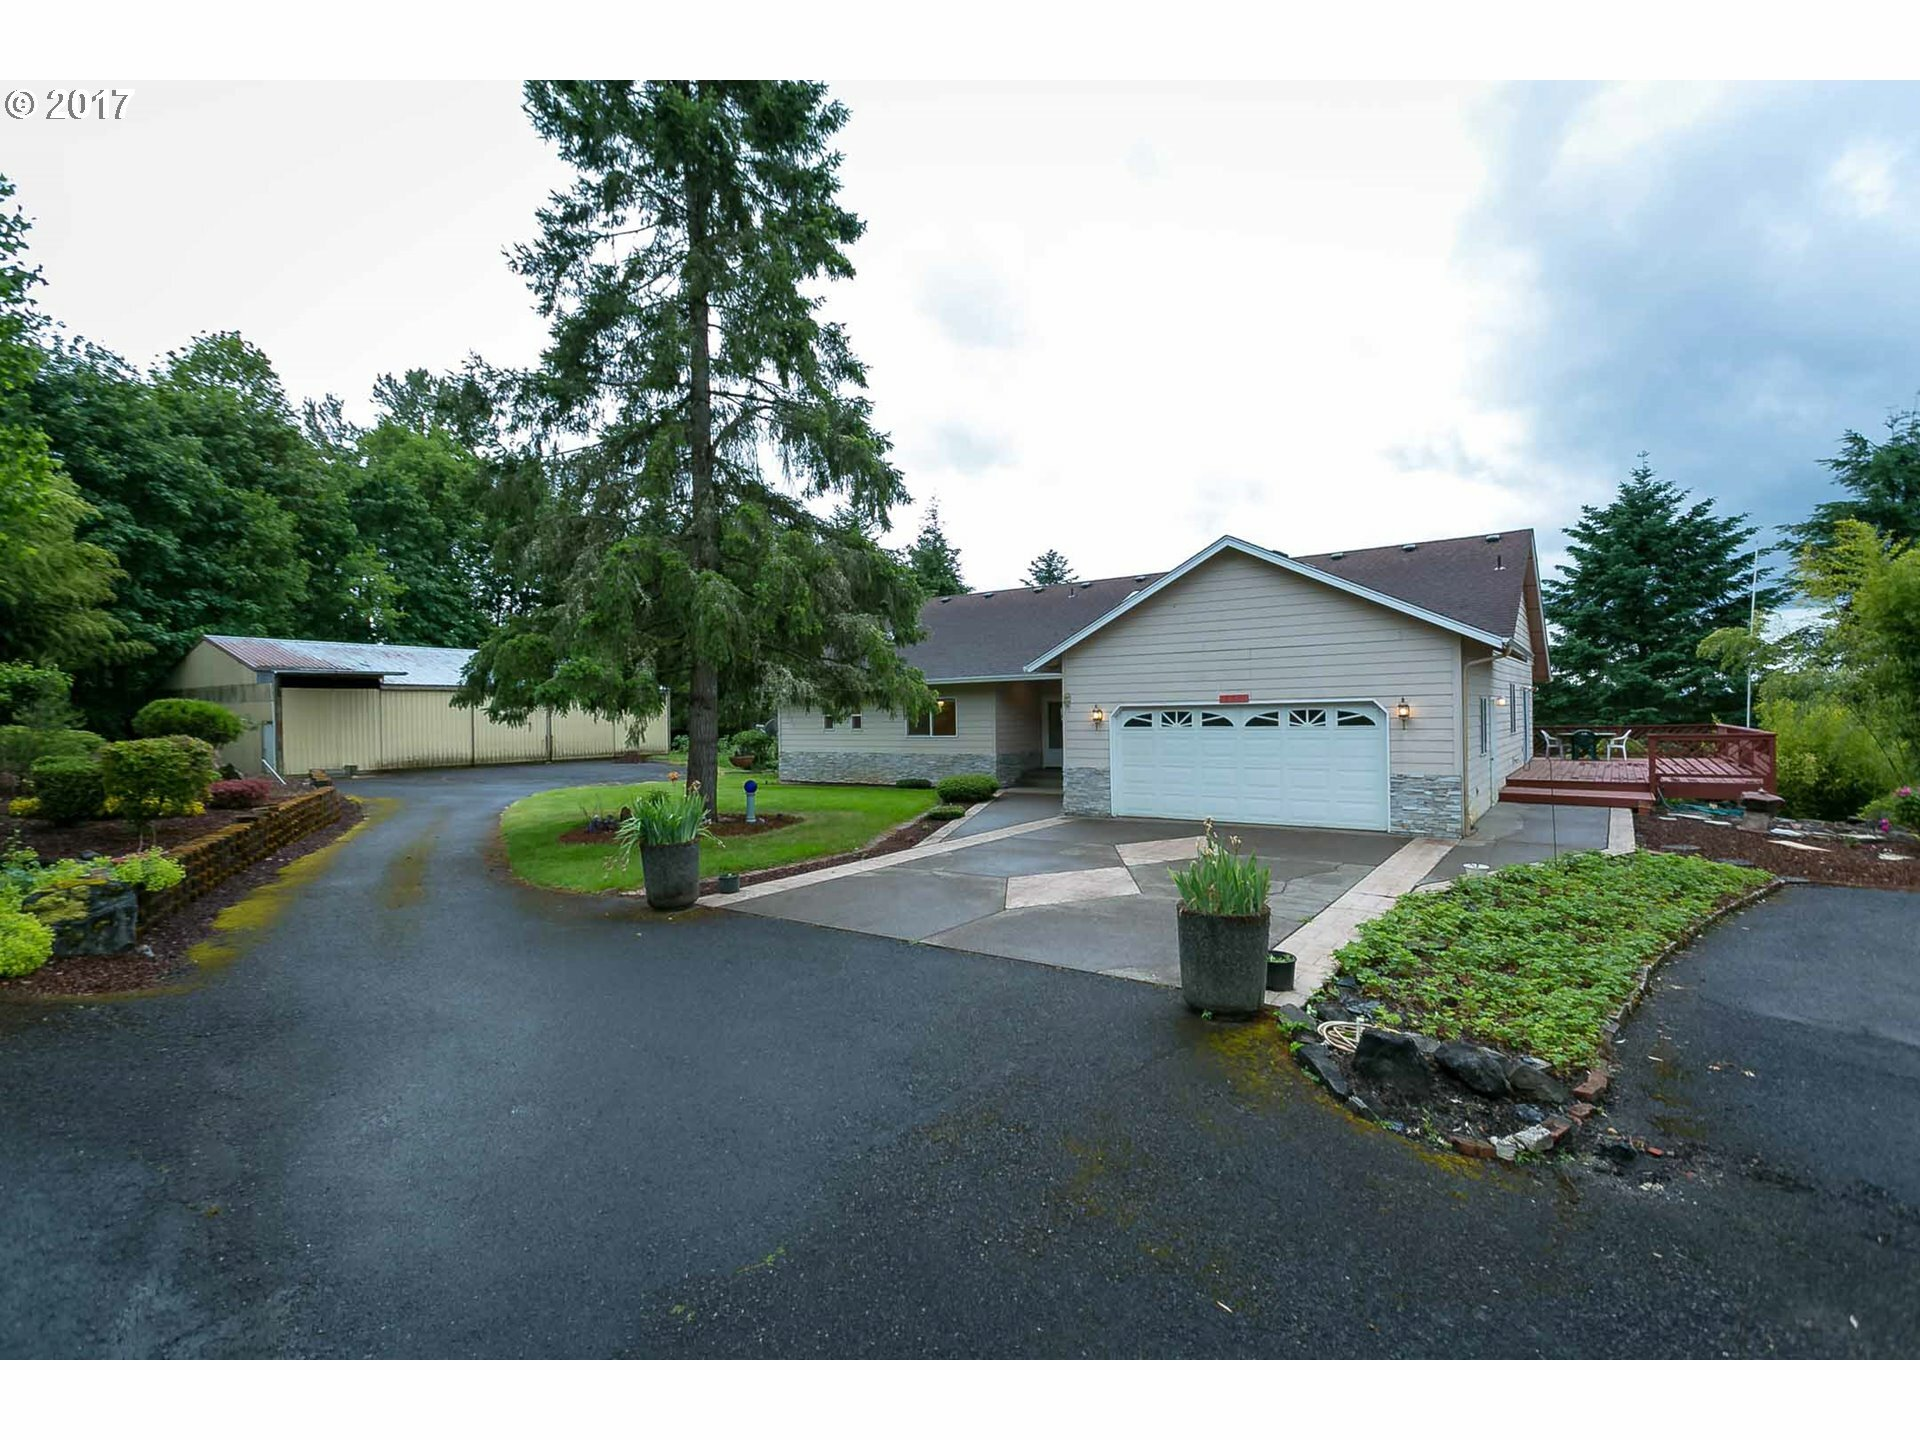 16000 Ne 185th Ave, Brush Prairie, WA - USA (photo 2)